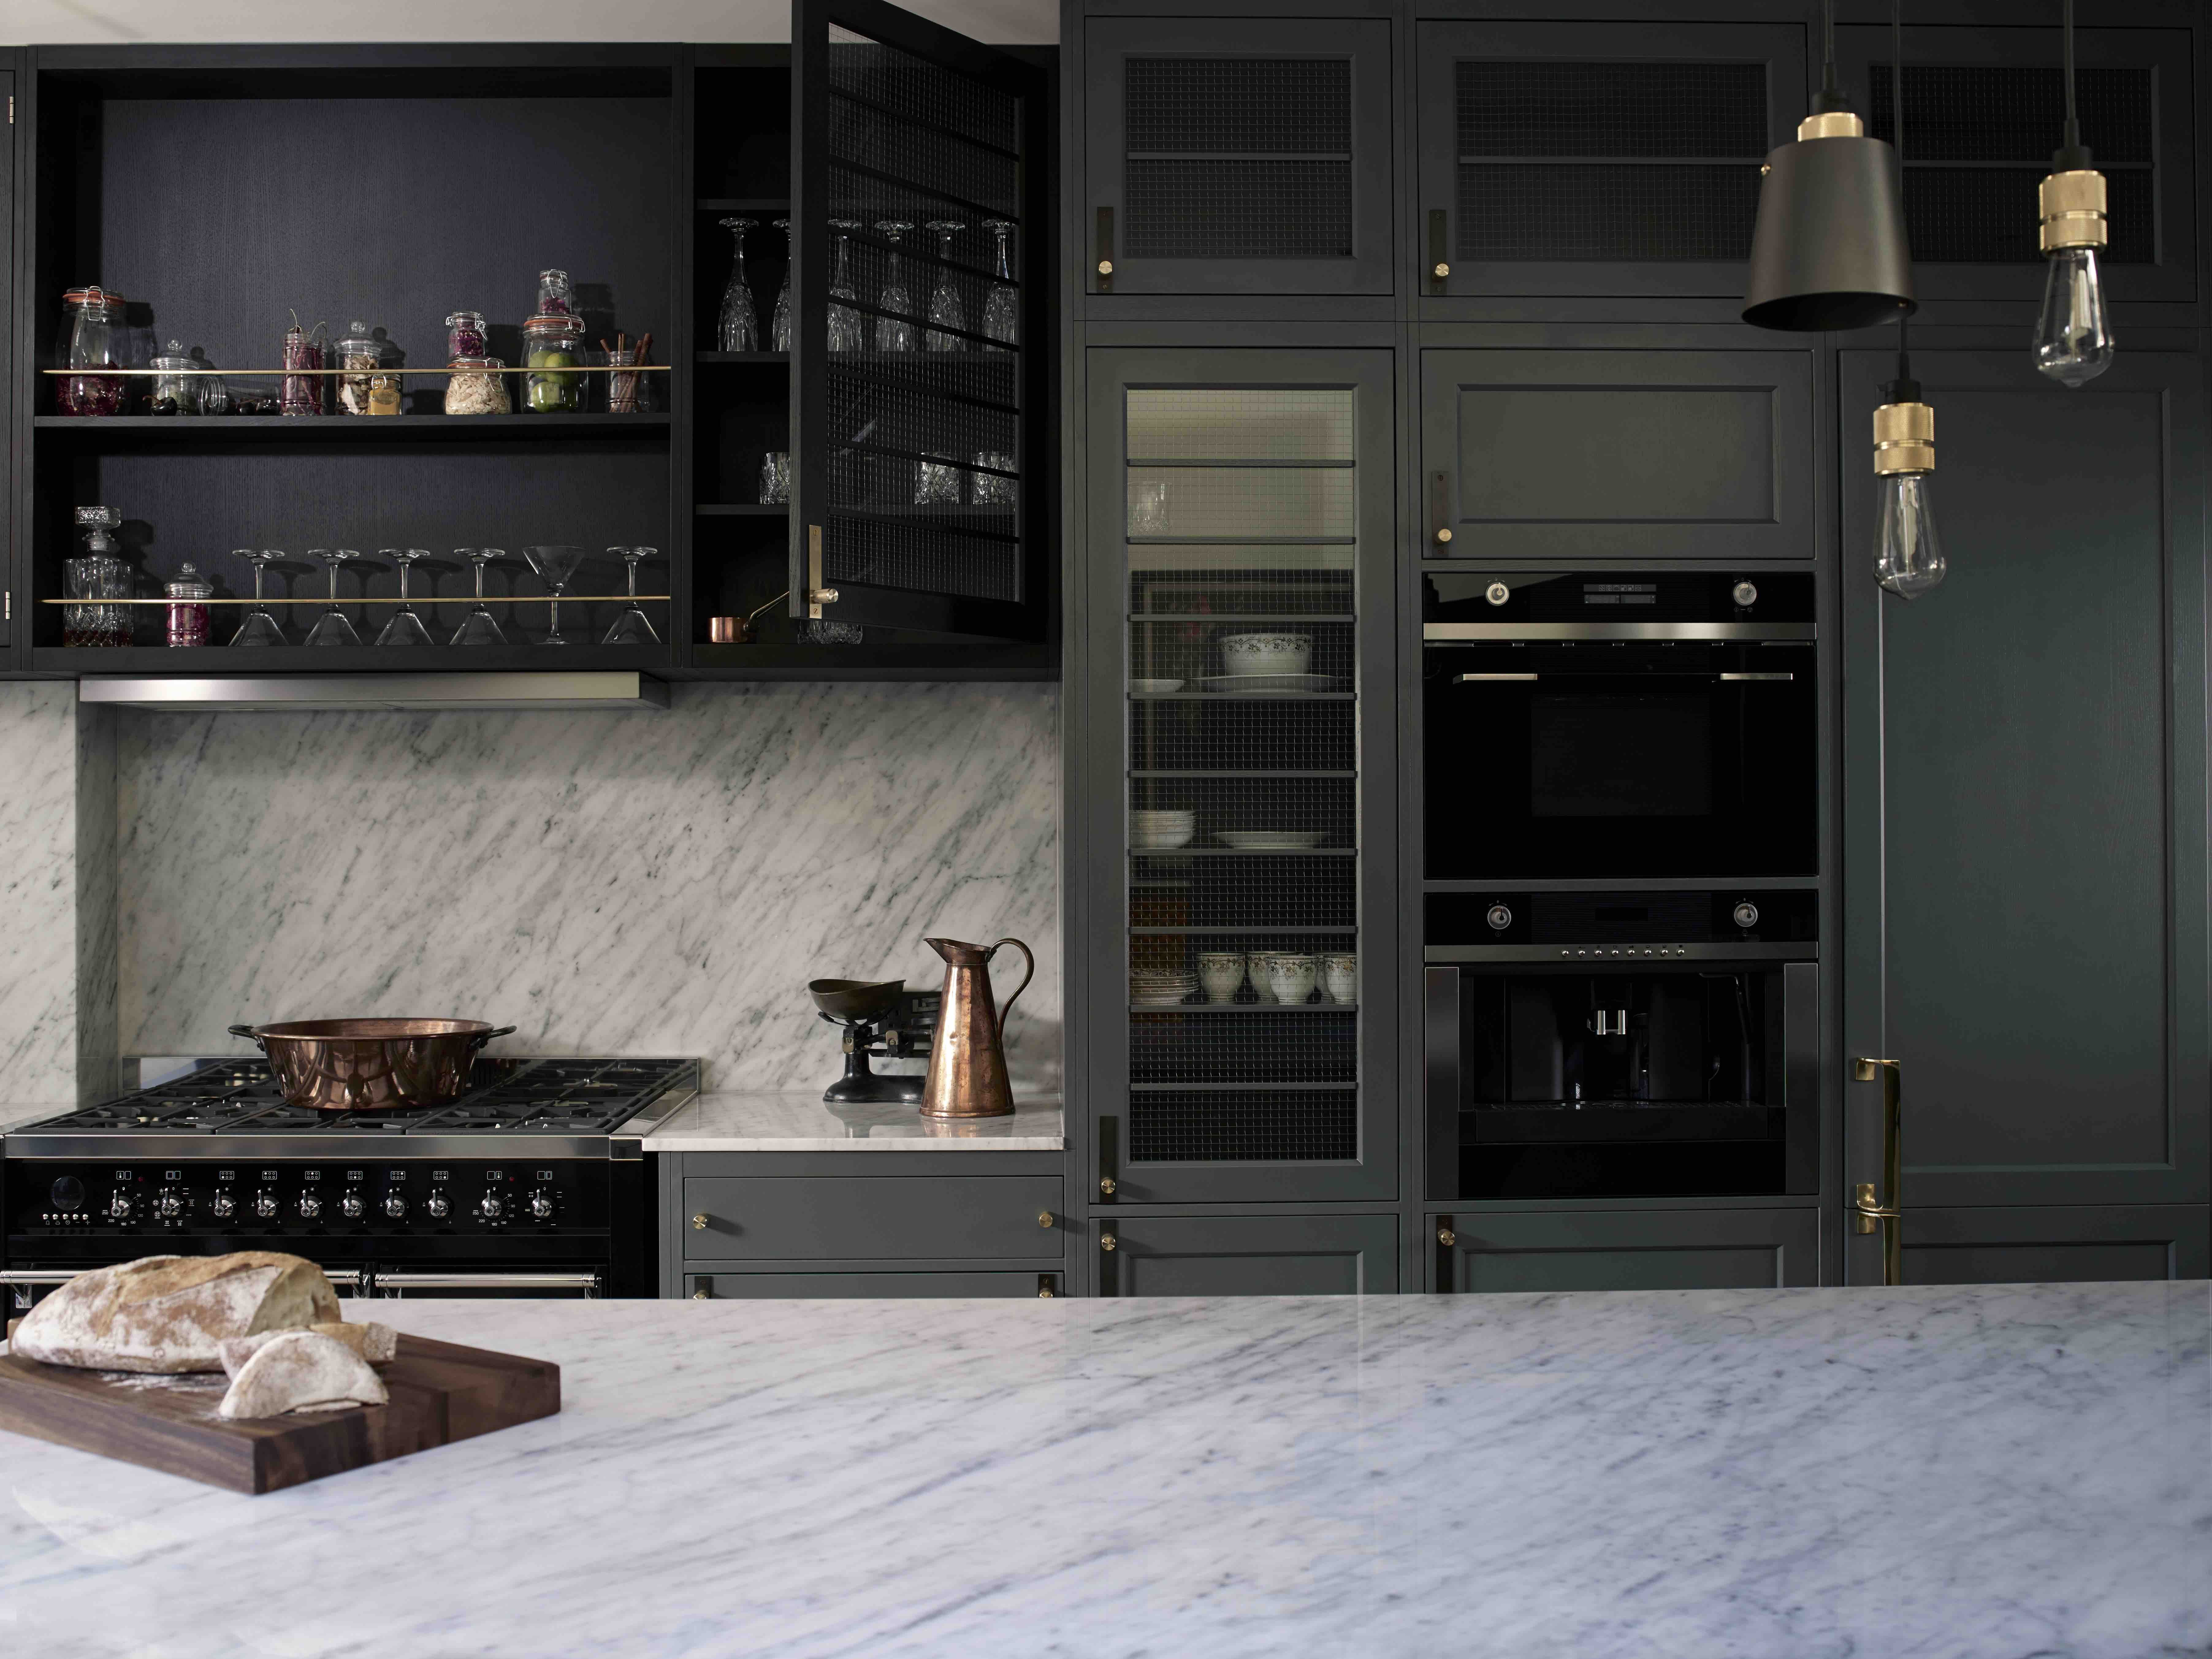 Give your kitchen cabinets the attention they deserve with a fresh